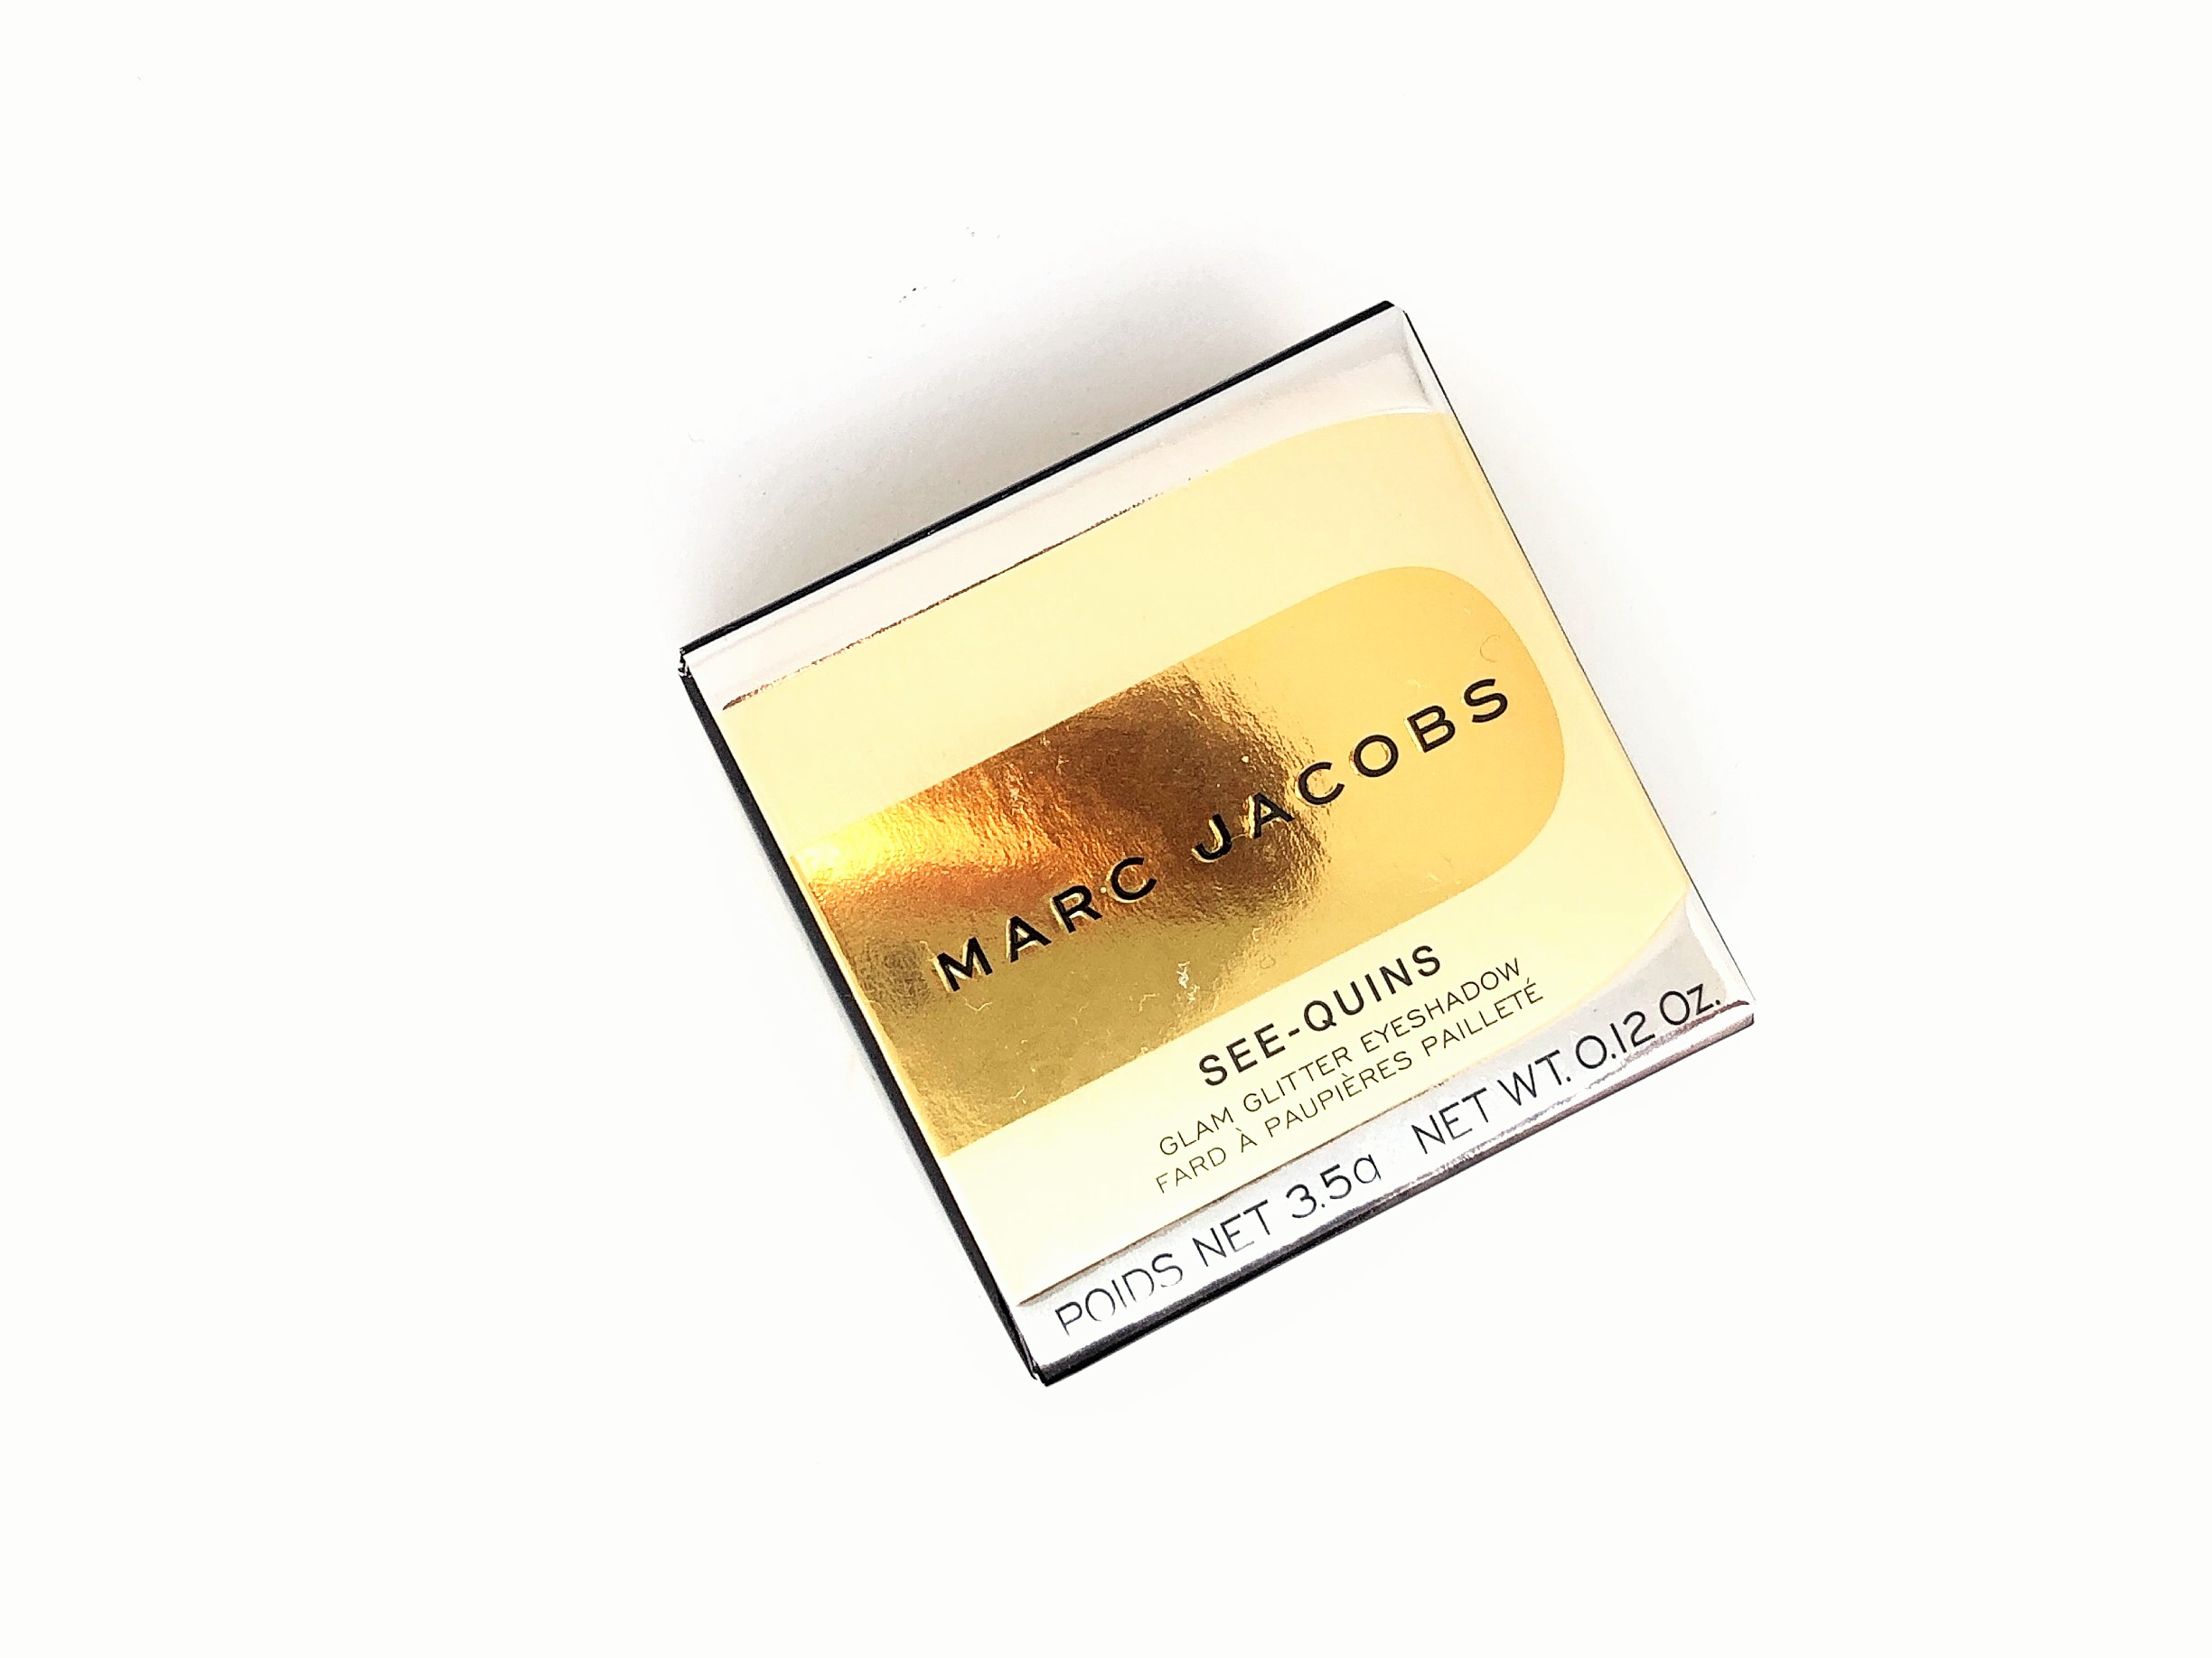 Review Marc Jacobs Copperazzi See-Quins Glam Glitter Eyeshadow (1)